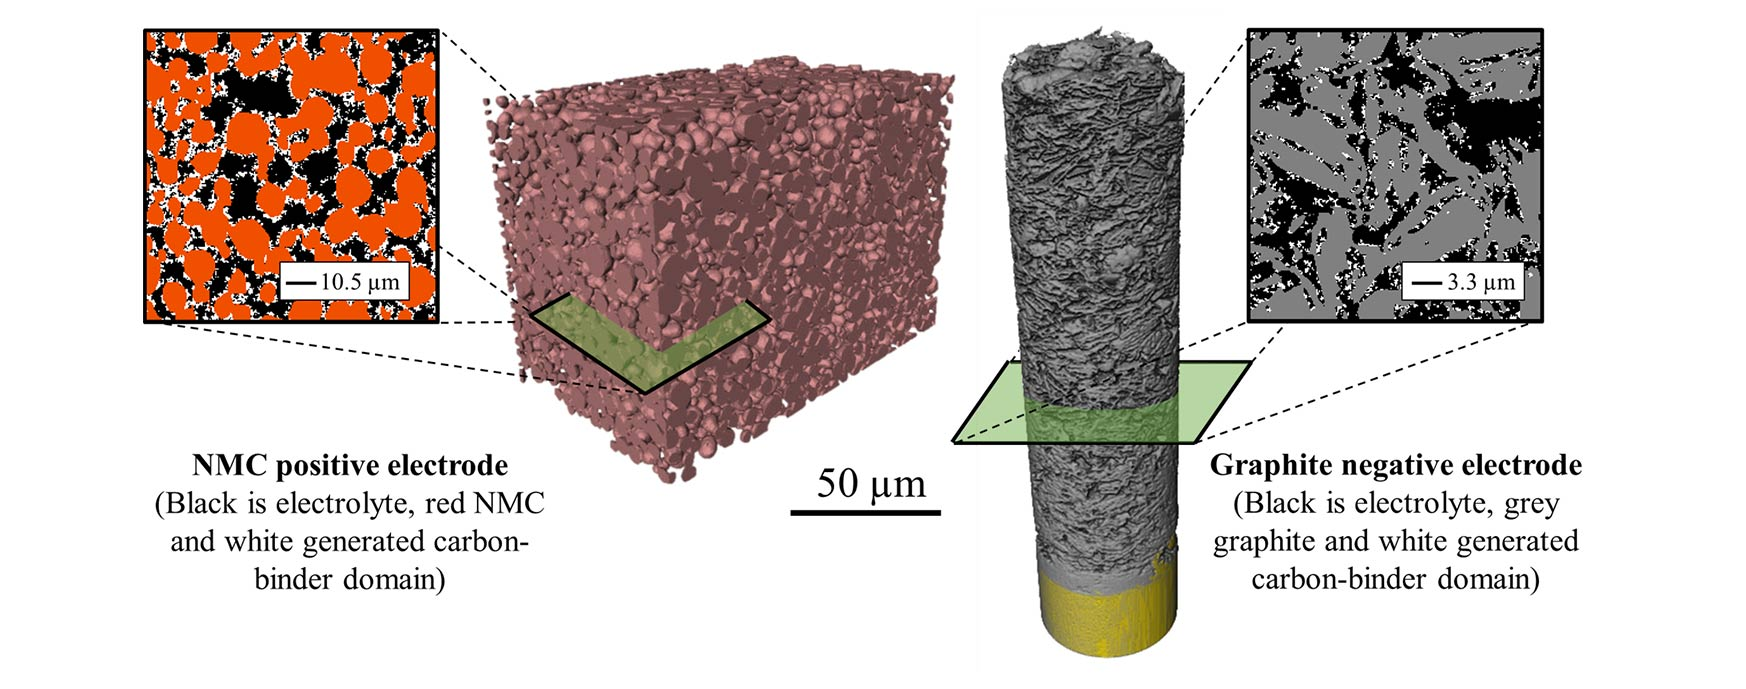 "Three-dimensional volume of two electrode materials—a cube-shaped image and a cylindrical-shaped image-represented at the microstructure scale along with a two-dimensional slice view taken in the middle of each volume. The cube-shaped image is labeled 50 µm. Dashed lines connect it to a square image with red, black, and white splotches with a scale bar of 10.5 µm. A caption underneath both images says, ""NMC positive electrode (Black is electrolyte, red NMC and white generated carbon-binder domain)."" The cylindrical-shaped image is labeled 50 µm. Dashed lines connect it to a square image with black, grey, and white splotches with a scale bar of 3.3 µm. The caption underneath both images says, ""Graphite negative electrode (Black is electrolyte, grey graphite and white generated carbon-binder domain)."